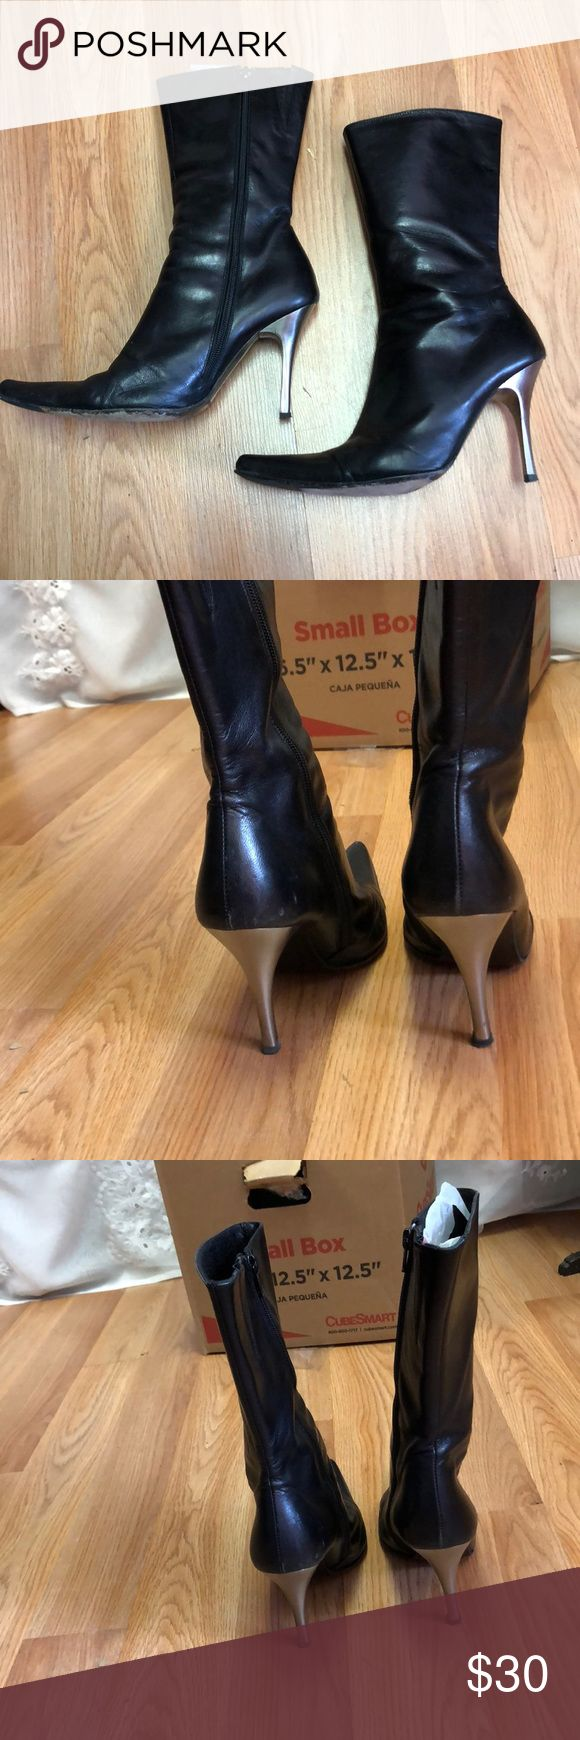 Charles David Stylish pointy leather heeled boots These boots are beautiful and can go with any outfit! They have been worn - as you can see from the bottoms-  but they're still a great pair of boots with a lot of wear left! Size 8, Charles David, made in Spain, leather. Charles David Shoes Heeled Boots